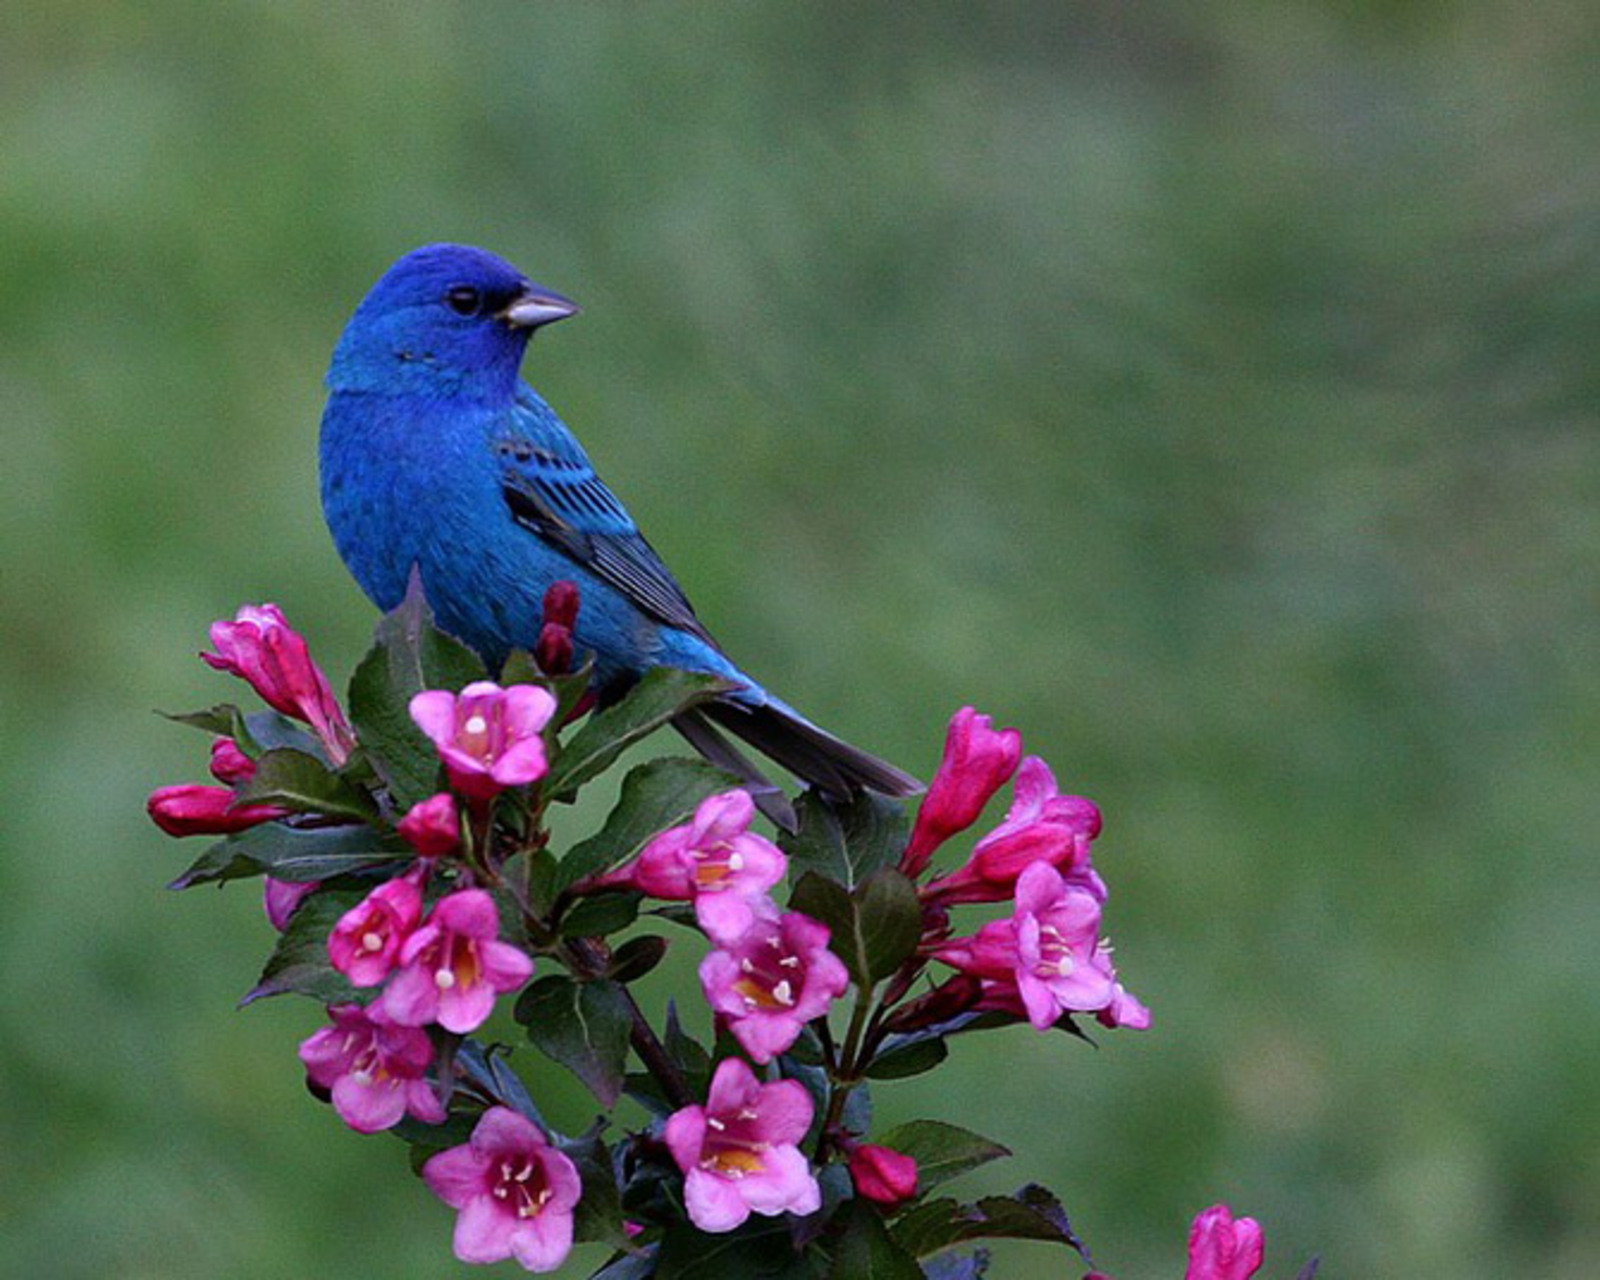 Blue Bird and pink Flowers wallpaper   ForWallpapercom 1600x1280